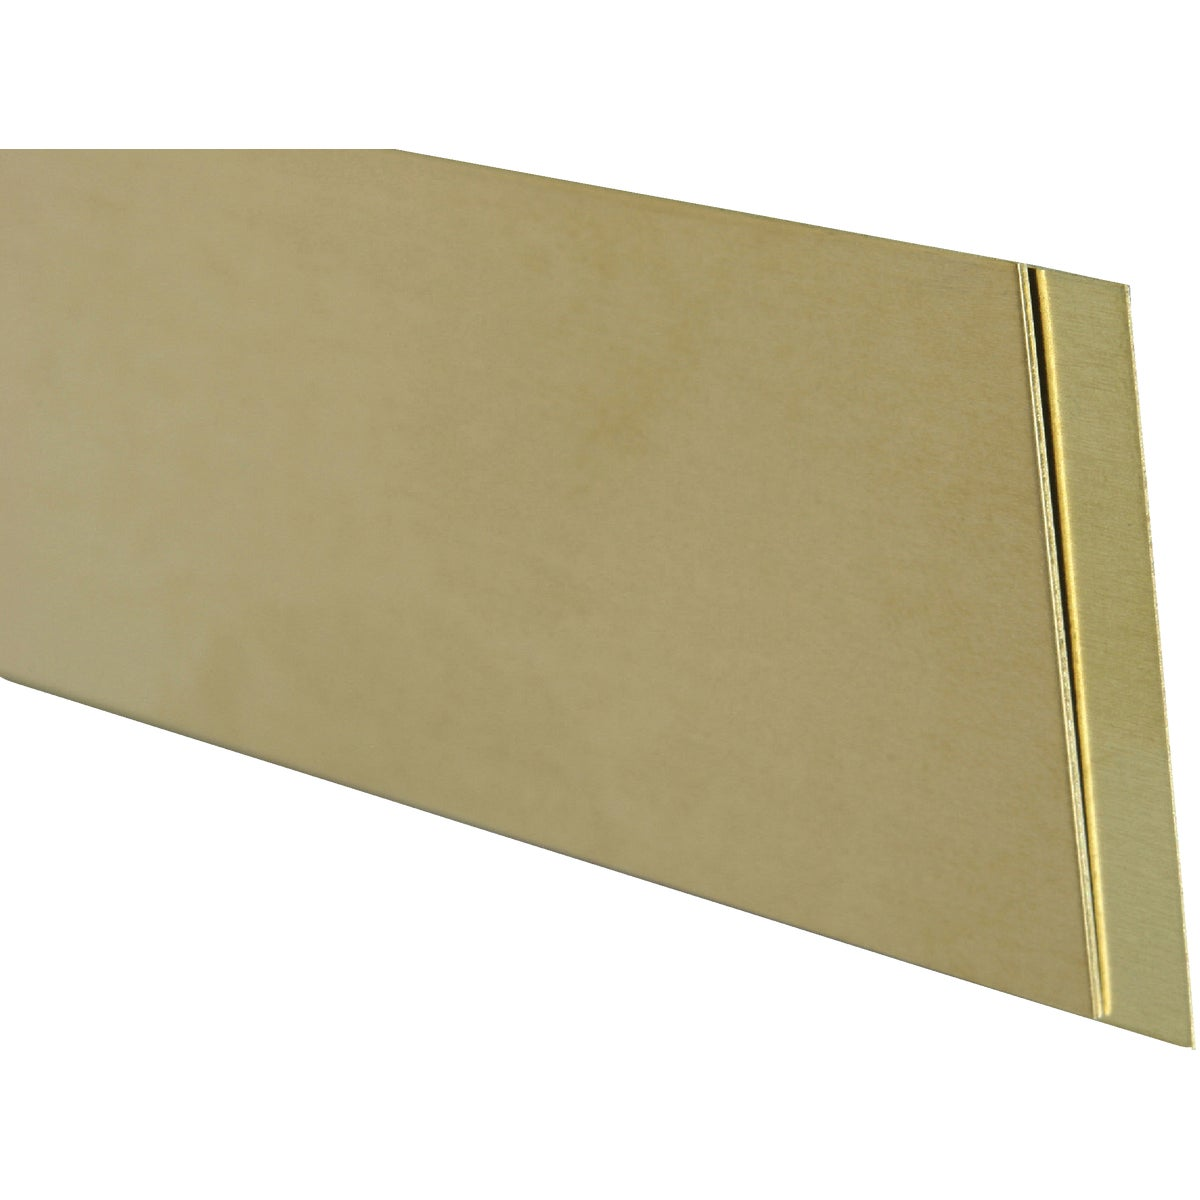 .032X1/4X12 BRASS STRIP - 8240 by K&s Precision Metals